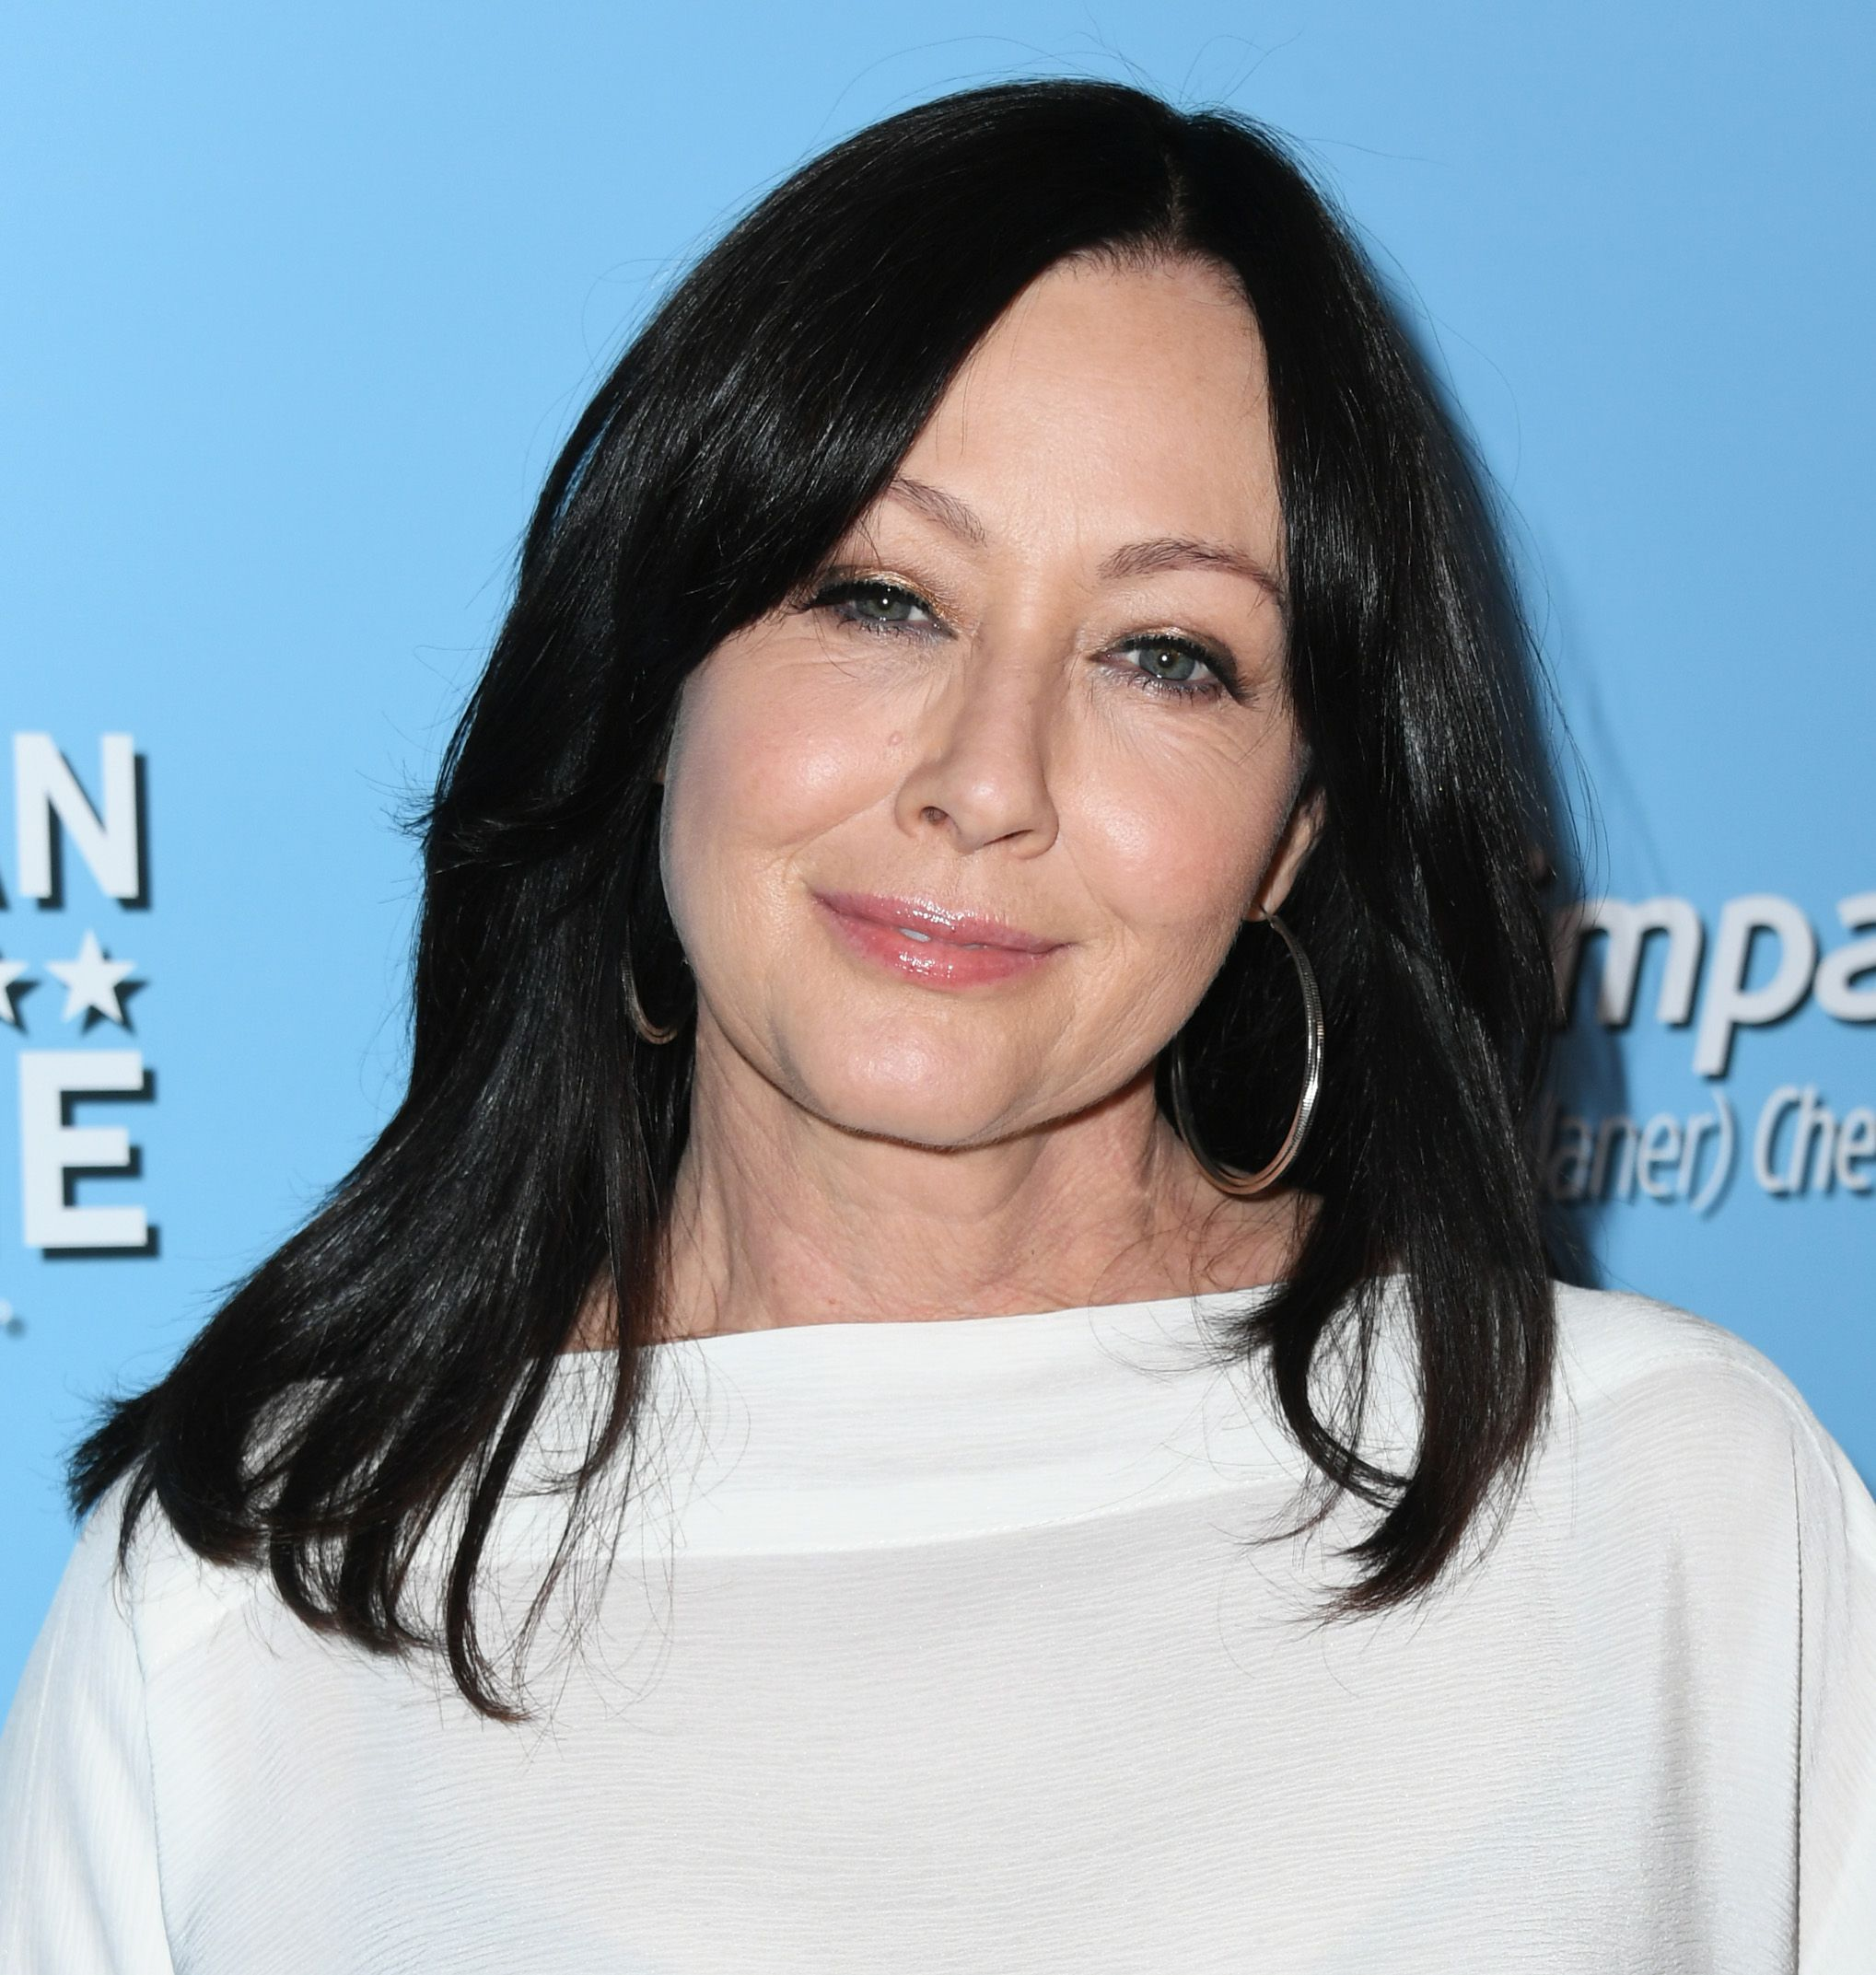 Shannen Doherty revealed earlier this month that she was battling stage 4 breast cancer.